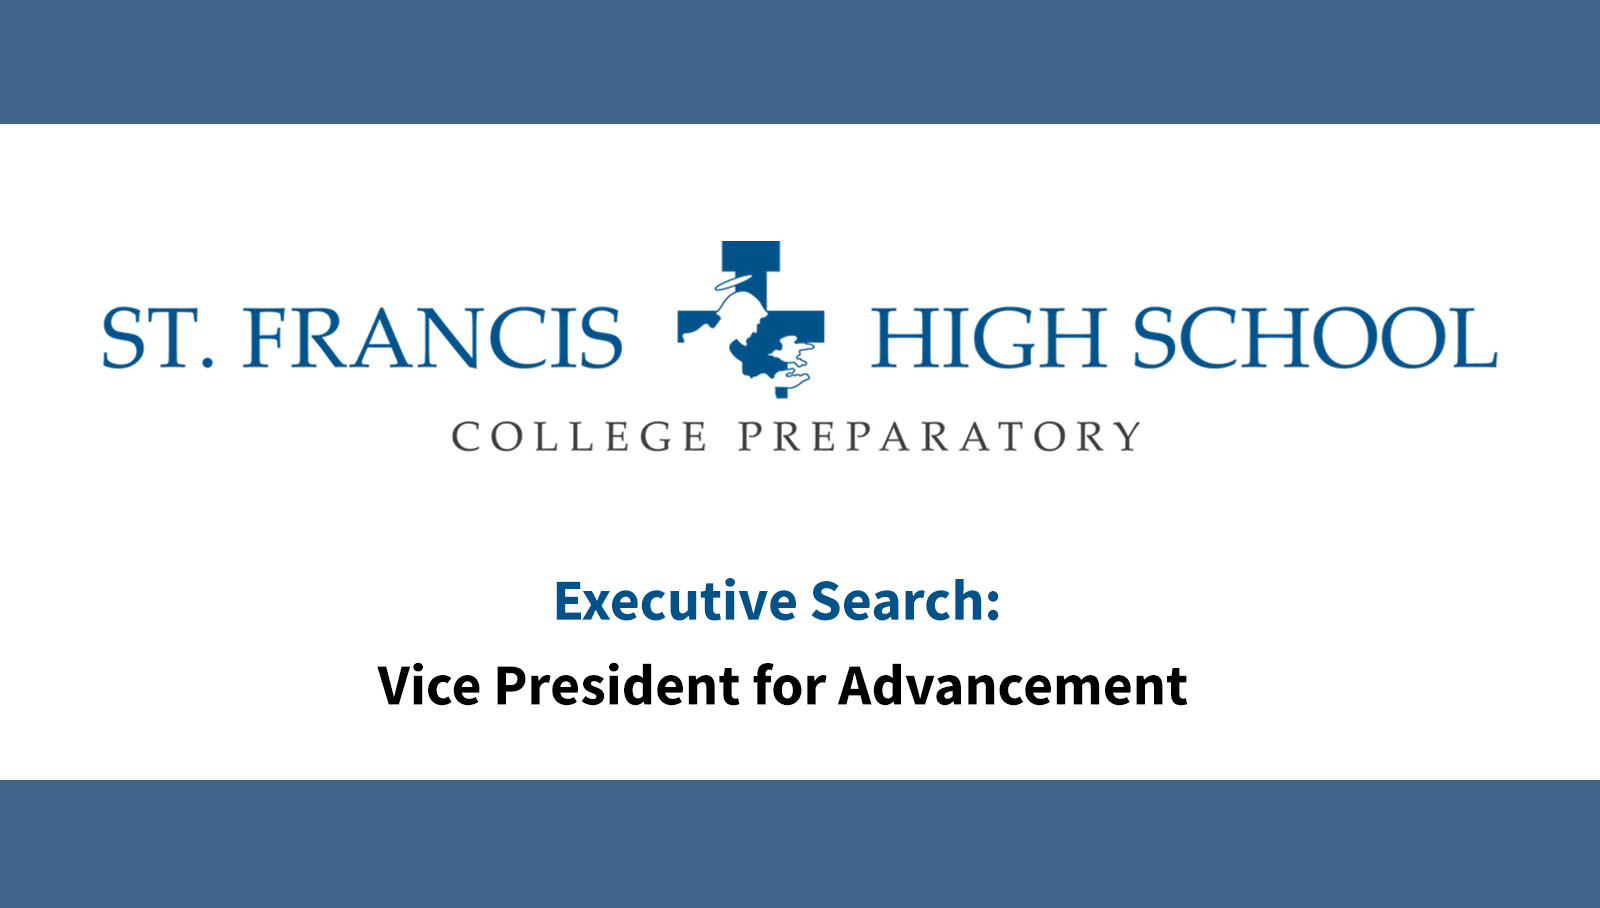 Executive Search: Vice President for Advancement St. Francis High School